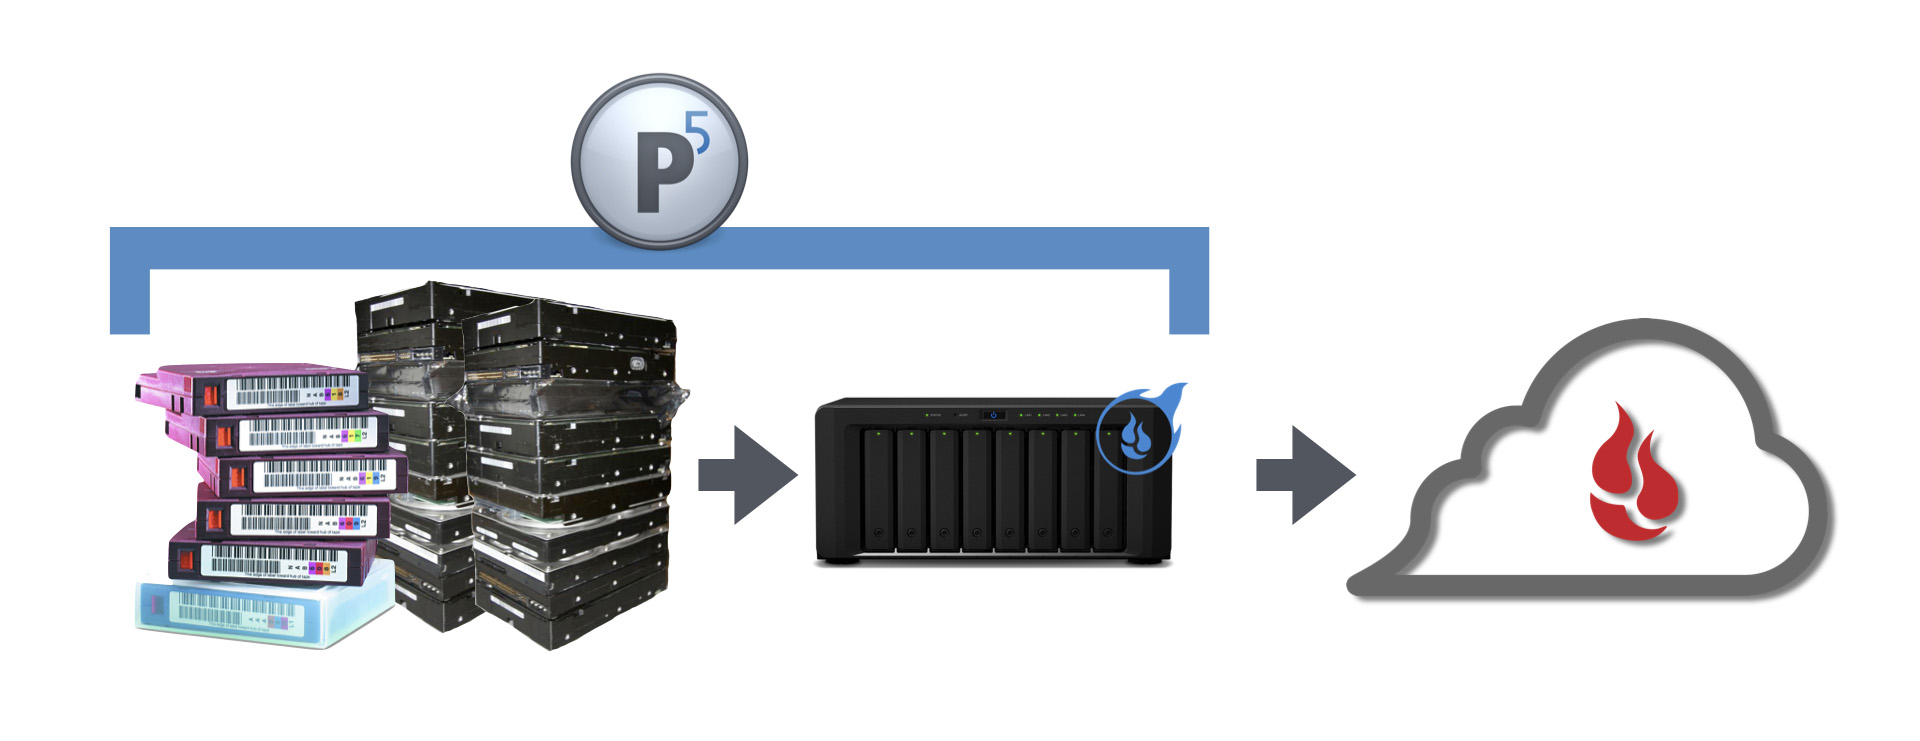 Media Management with Archiware P5 and Cloud Backup